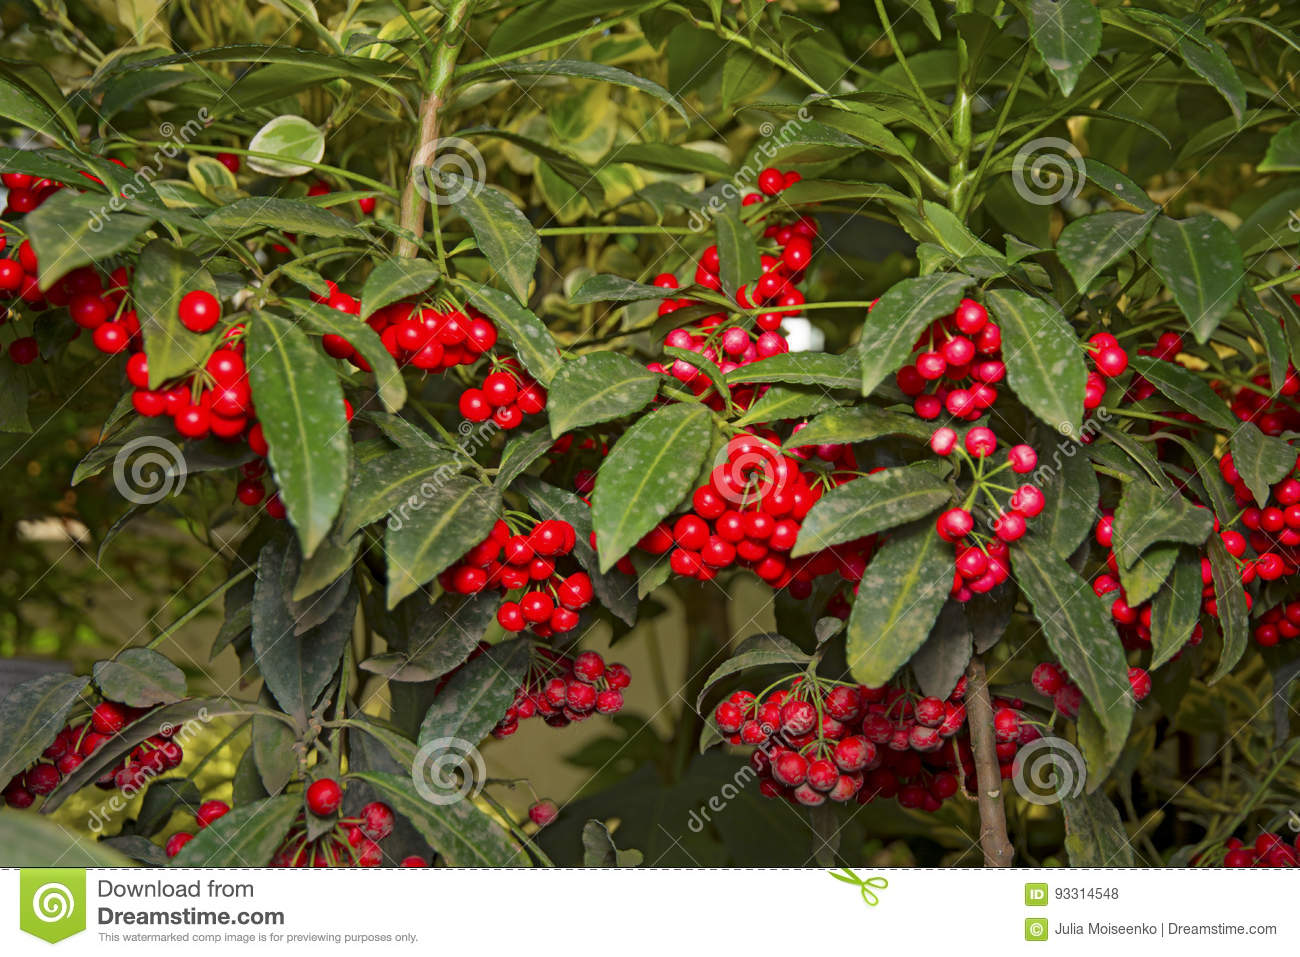 Green Bush With Bright Red Berries Hang In Clusters Stock Photo